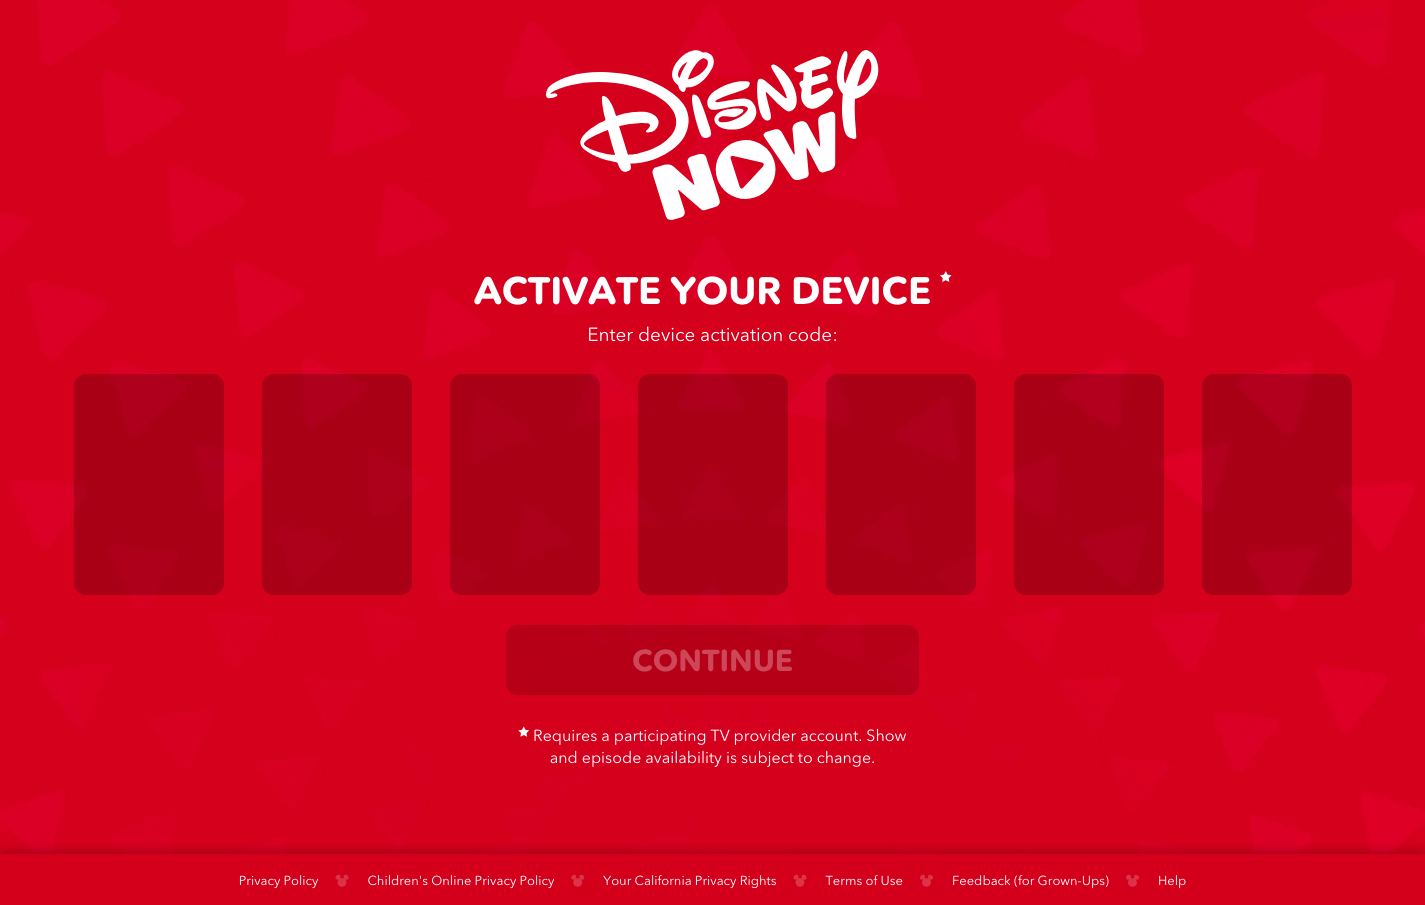 DisneyNOW Activate